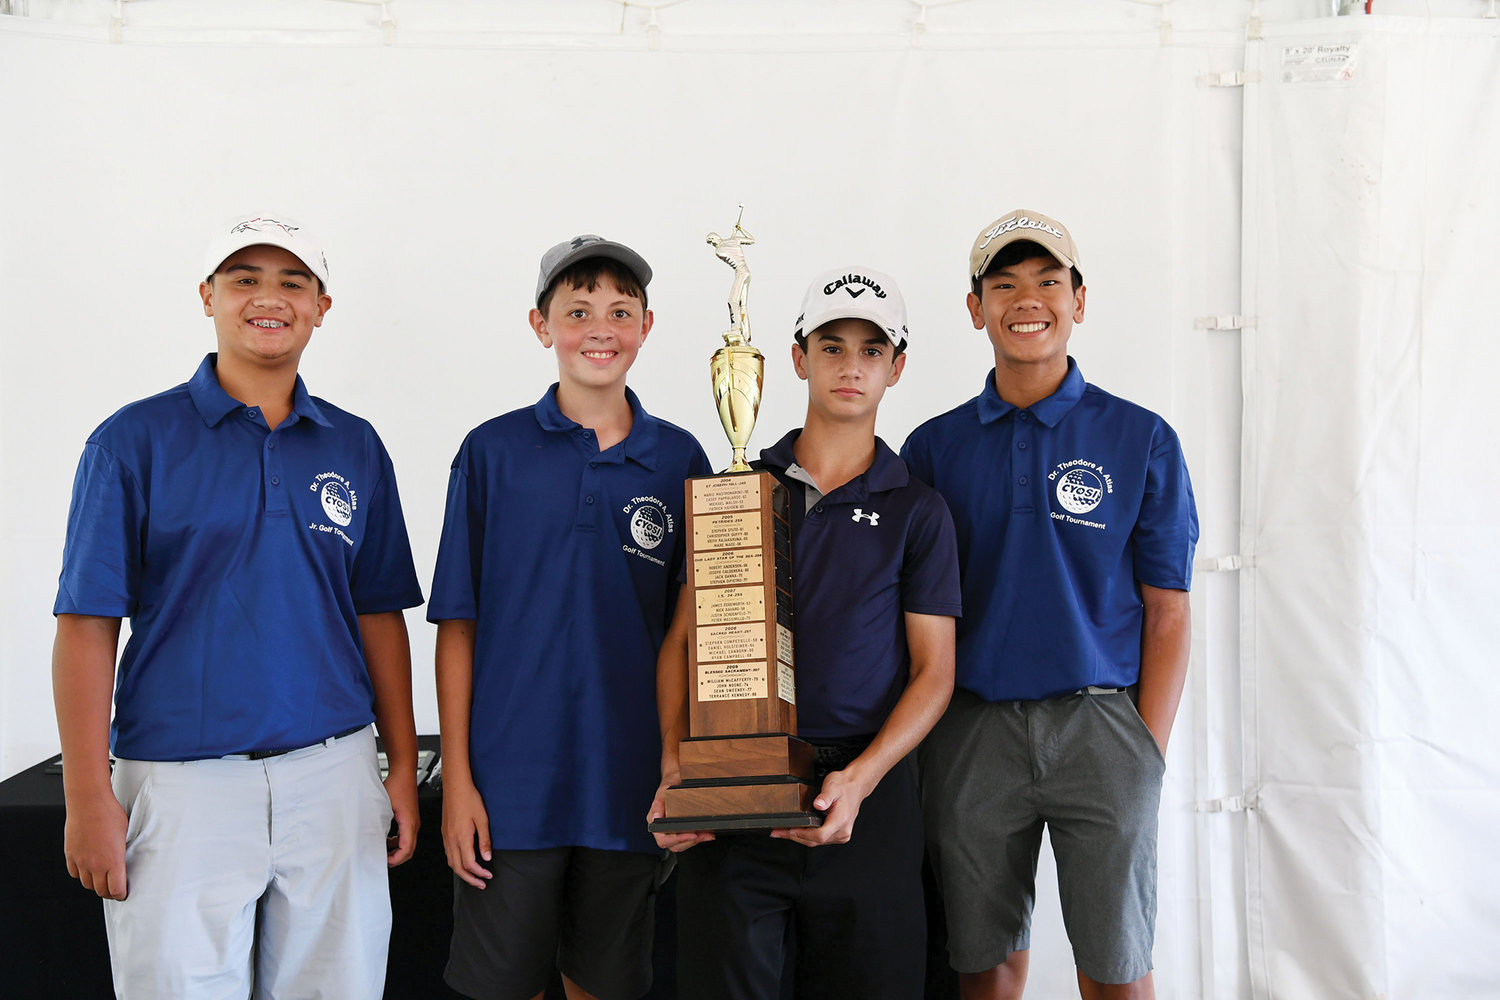 The winning boys' team from IS 34 was, from left, Michael Hui, Sean Bailey, James Lamantia and Andrew Biscocho.